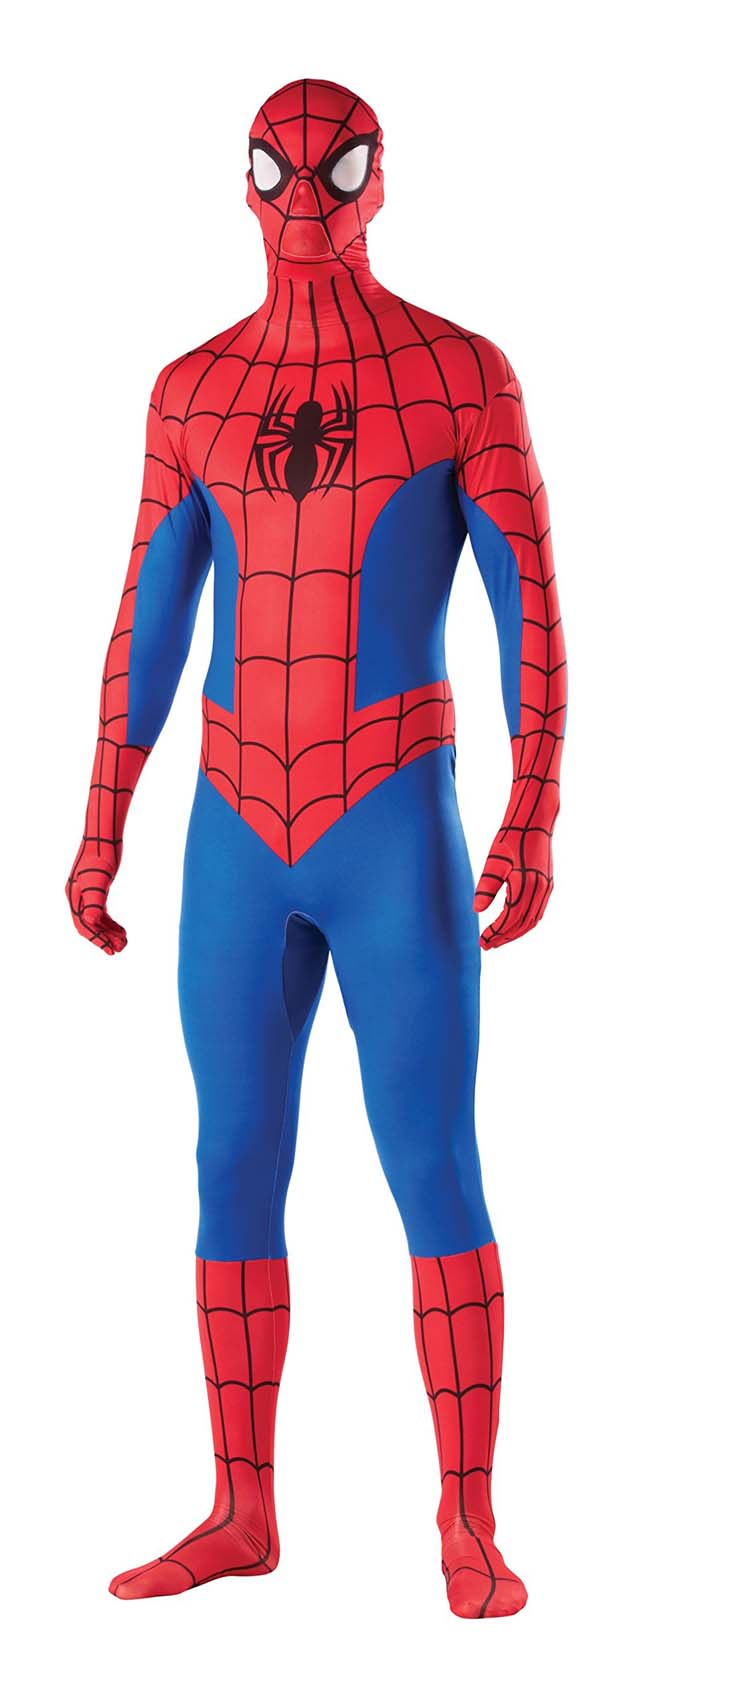 Spider-Man 2nd Costume